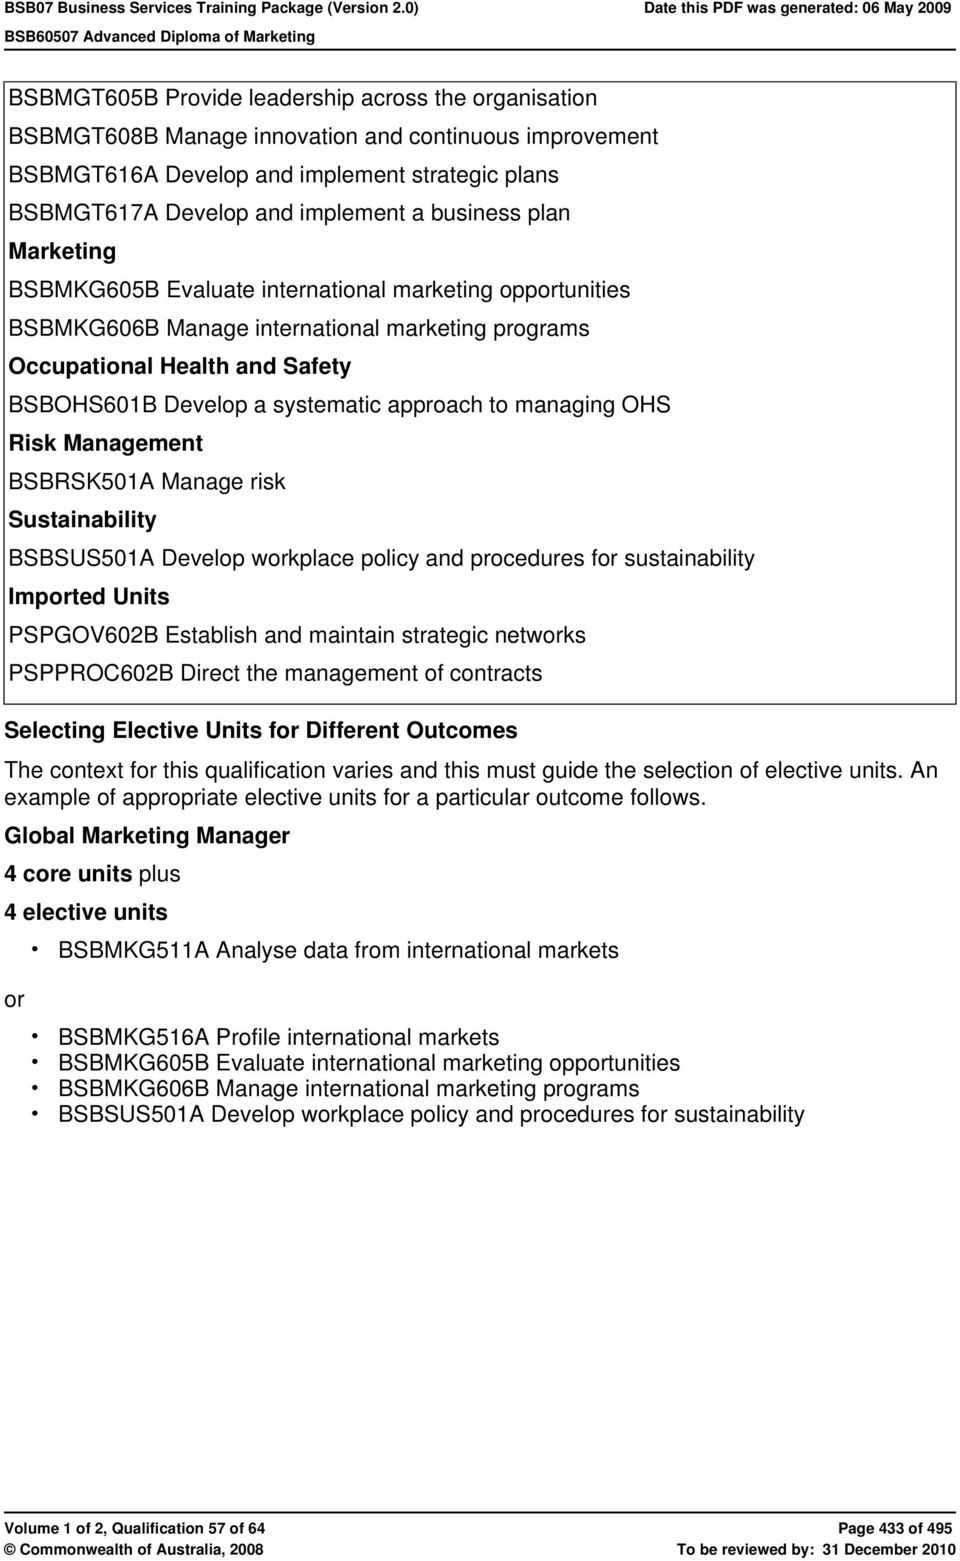 approach to managing OHS Risk Management BSBRSK501A Manage risk Sustainability BSBSUS501A Develop workplace policy and procedures for sustainability Imported Units PSPGOV602B Establish and maintain